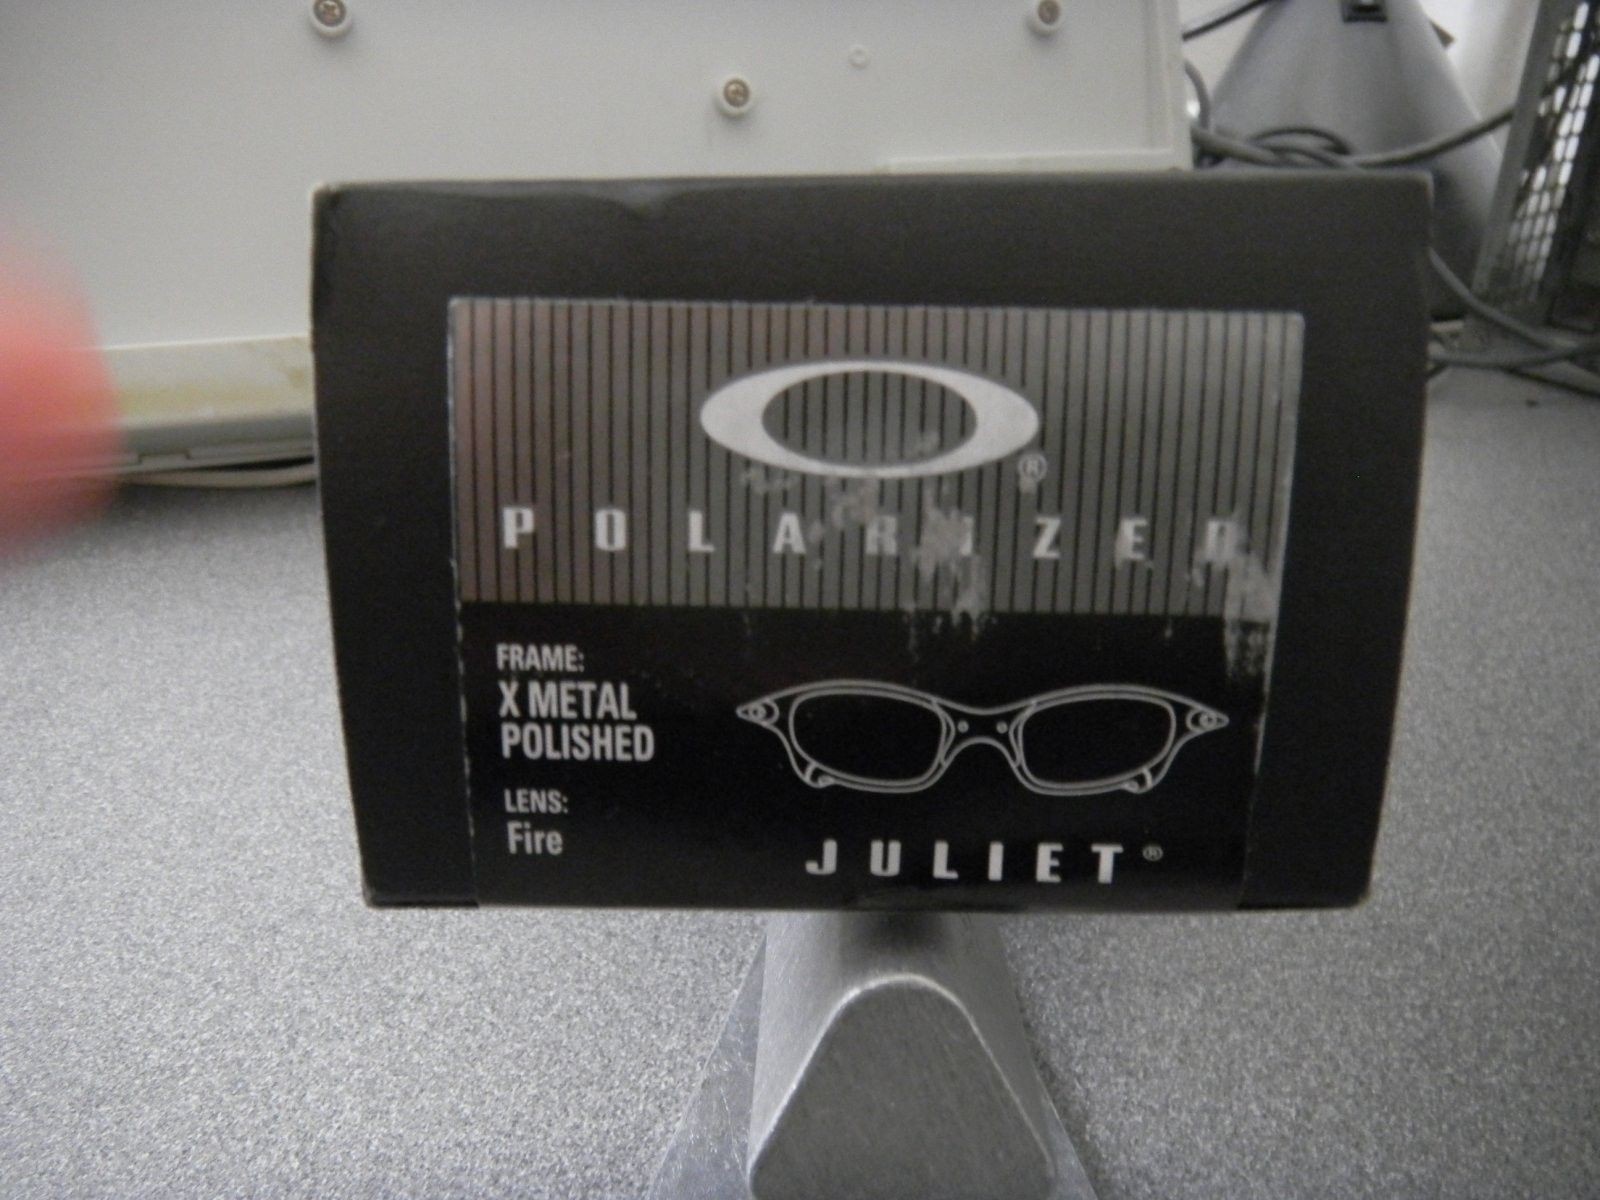 XX 24k and polished fire polarized Juliet - uploadfromtaptalk1420885772309.jpeg